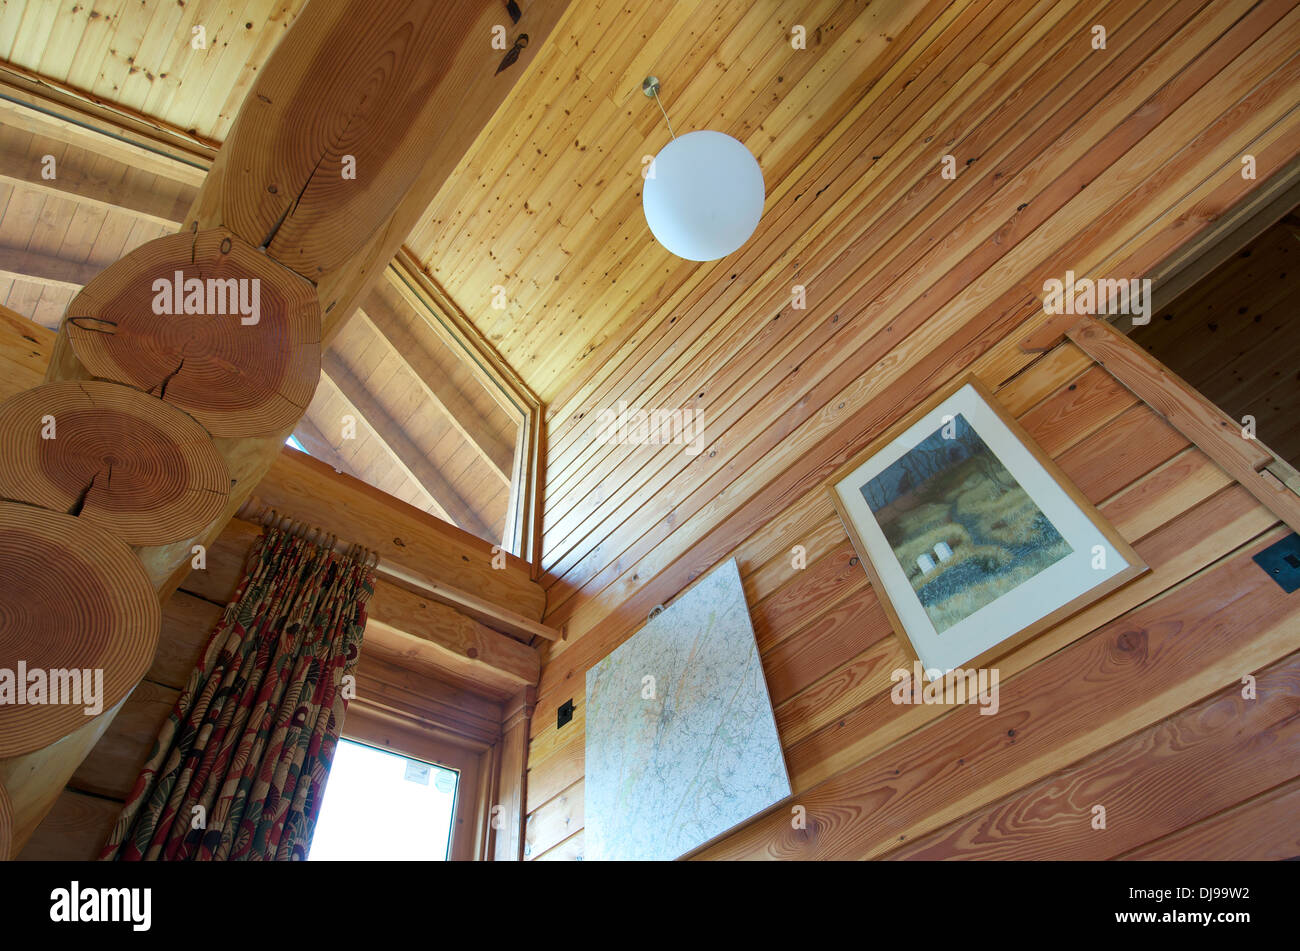 Ceiling of Eco Log Cabin, Shrophsire, UK - Stock Image